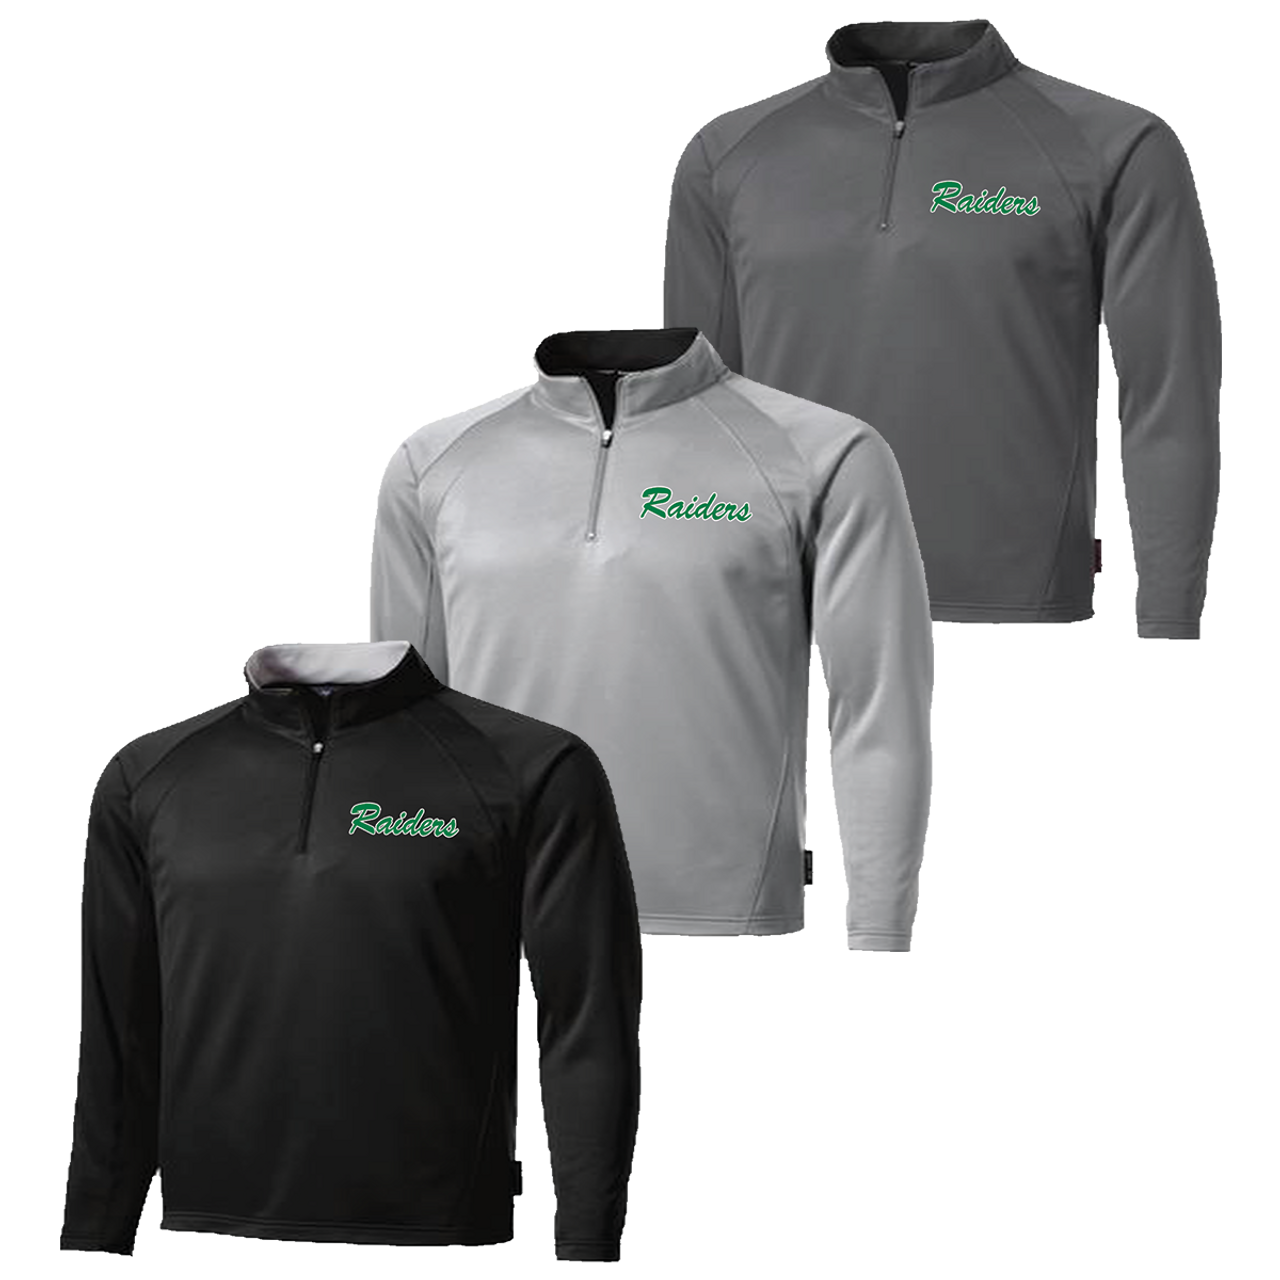 8a378fbb2889a Columbia Raiders 1 4 Zip Pullover (RY203) - RycoSports